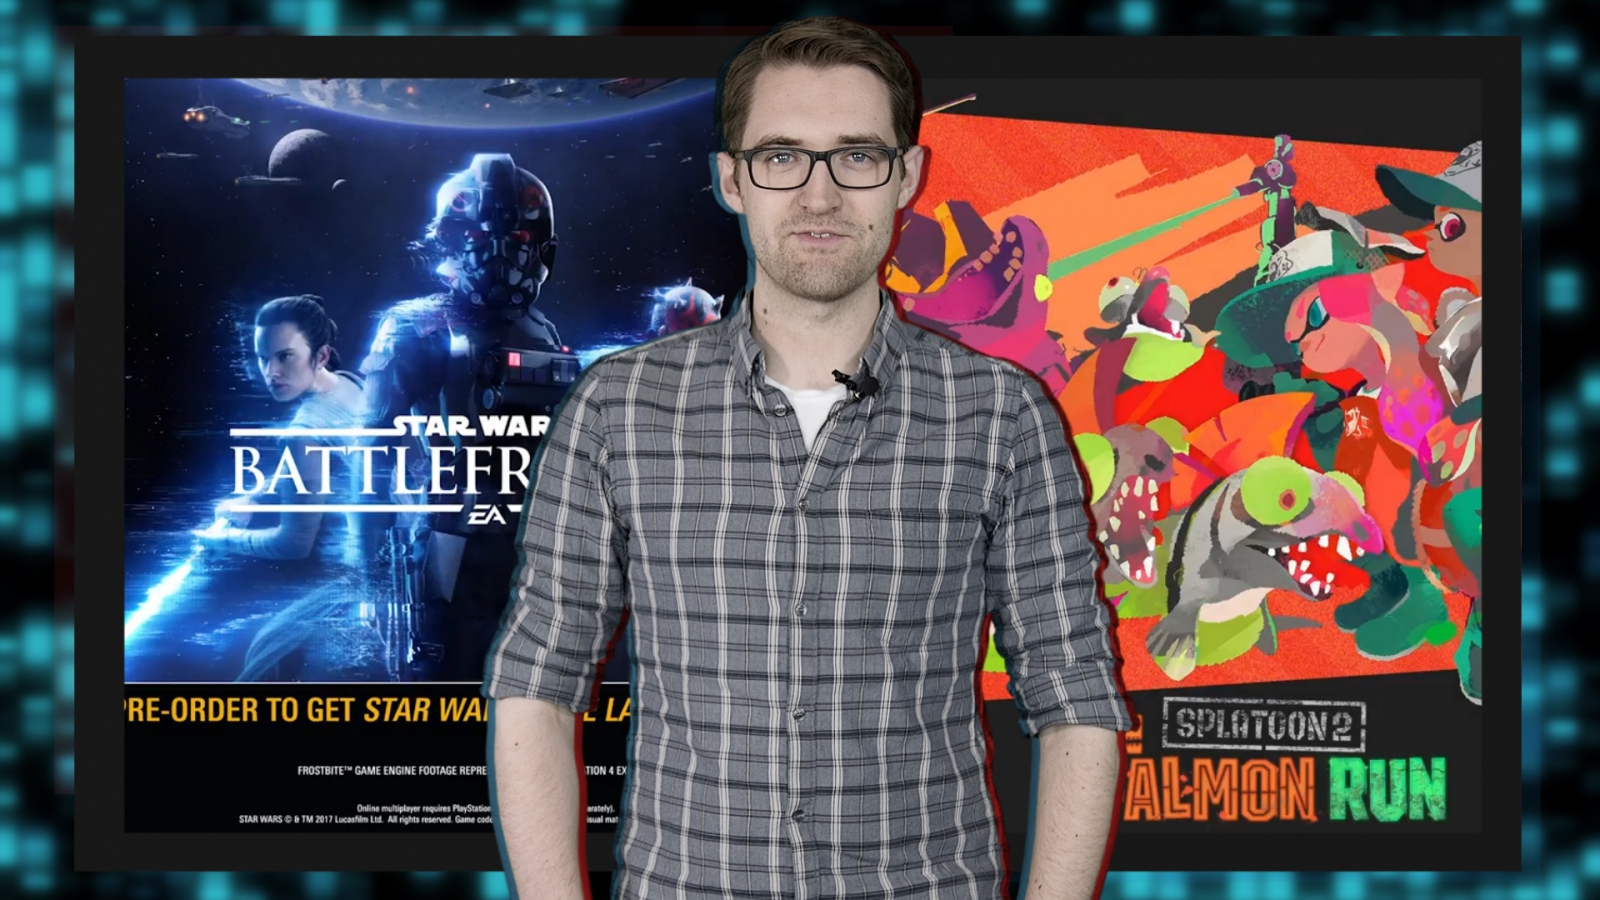 Video game news round-up: Star Wars Battlefront 2, Overwatch Uprising and Nintendo Direct